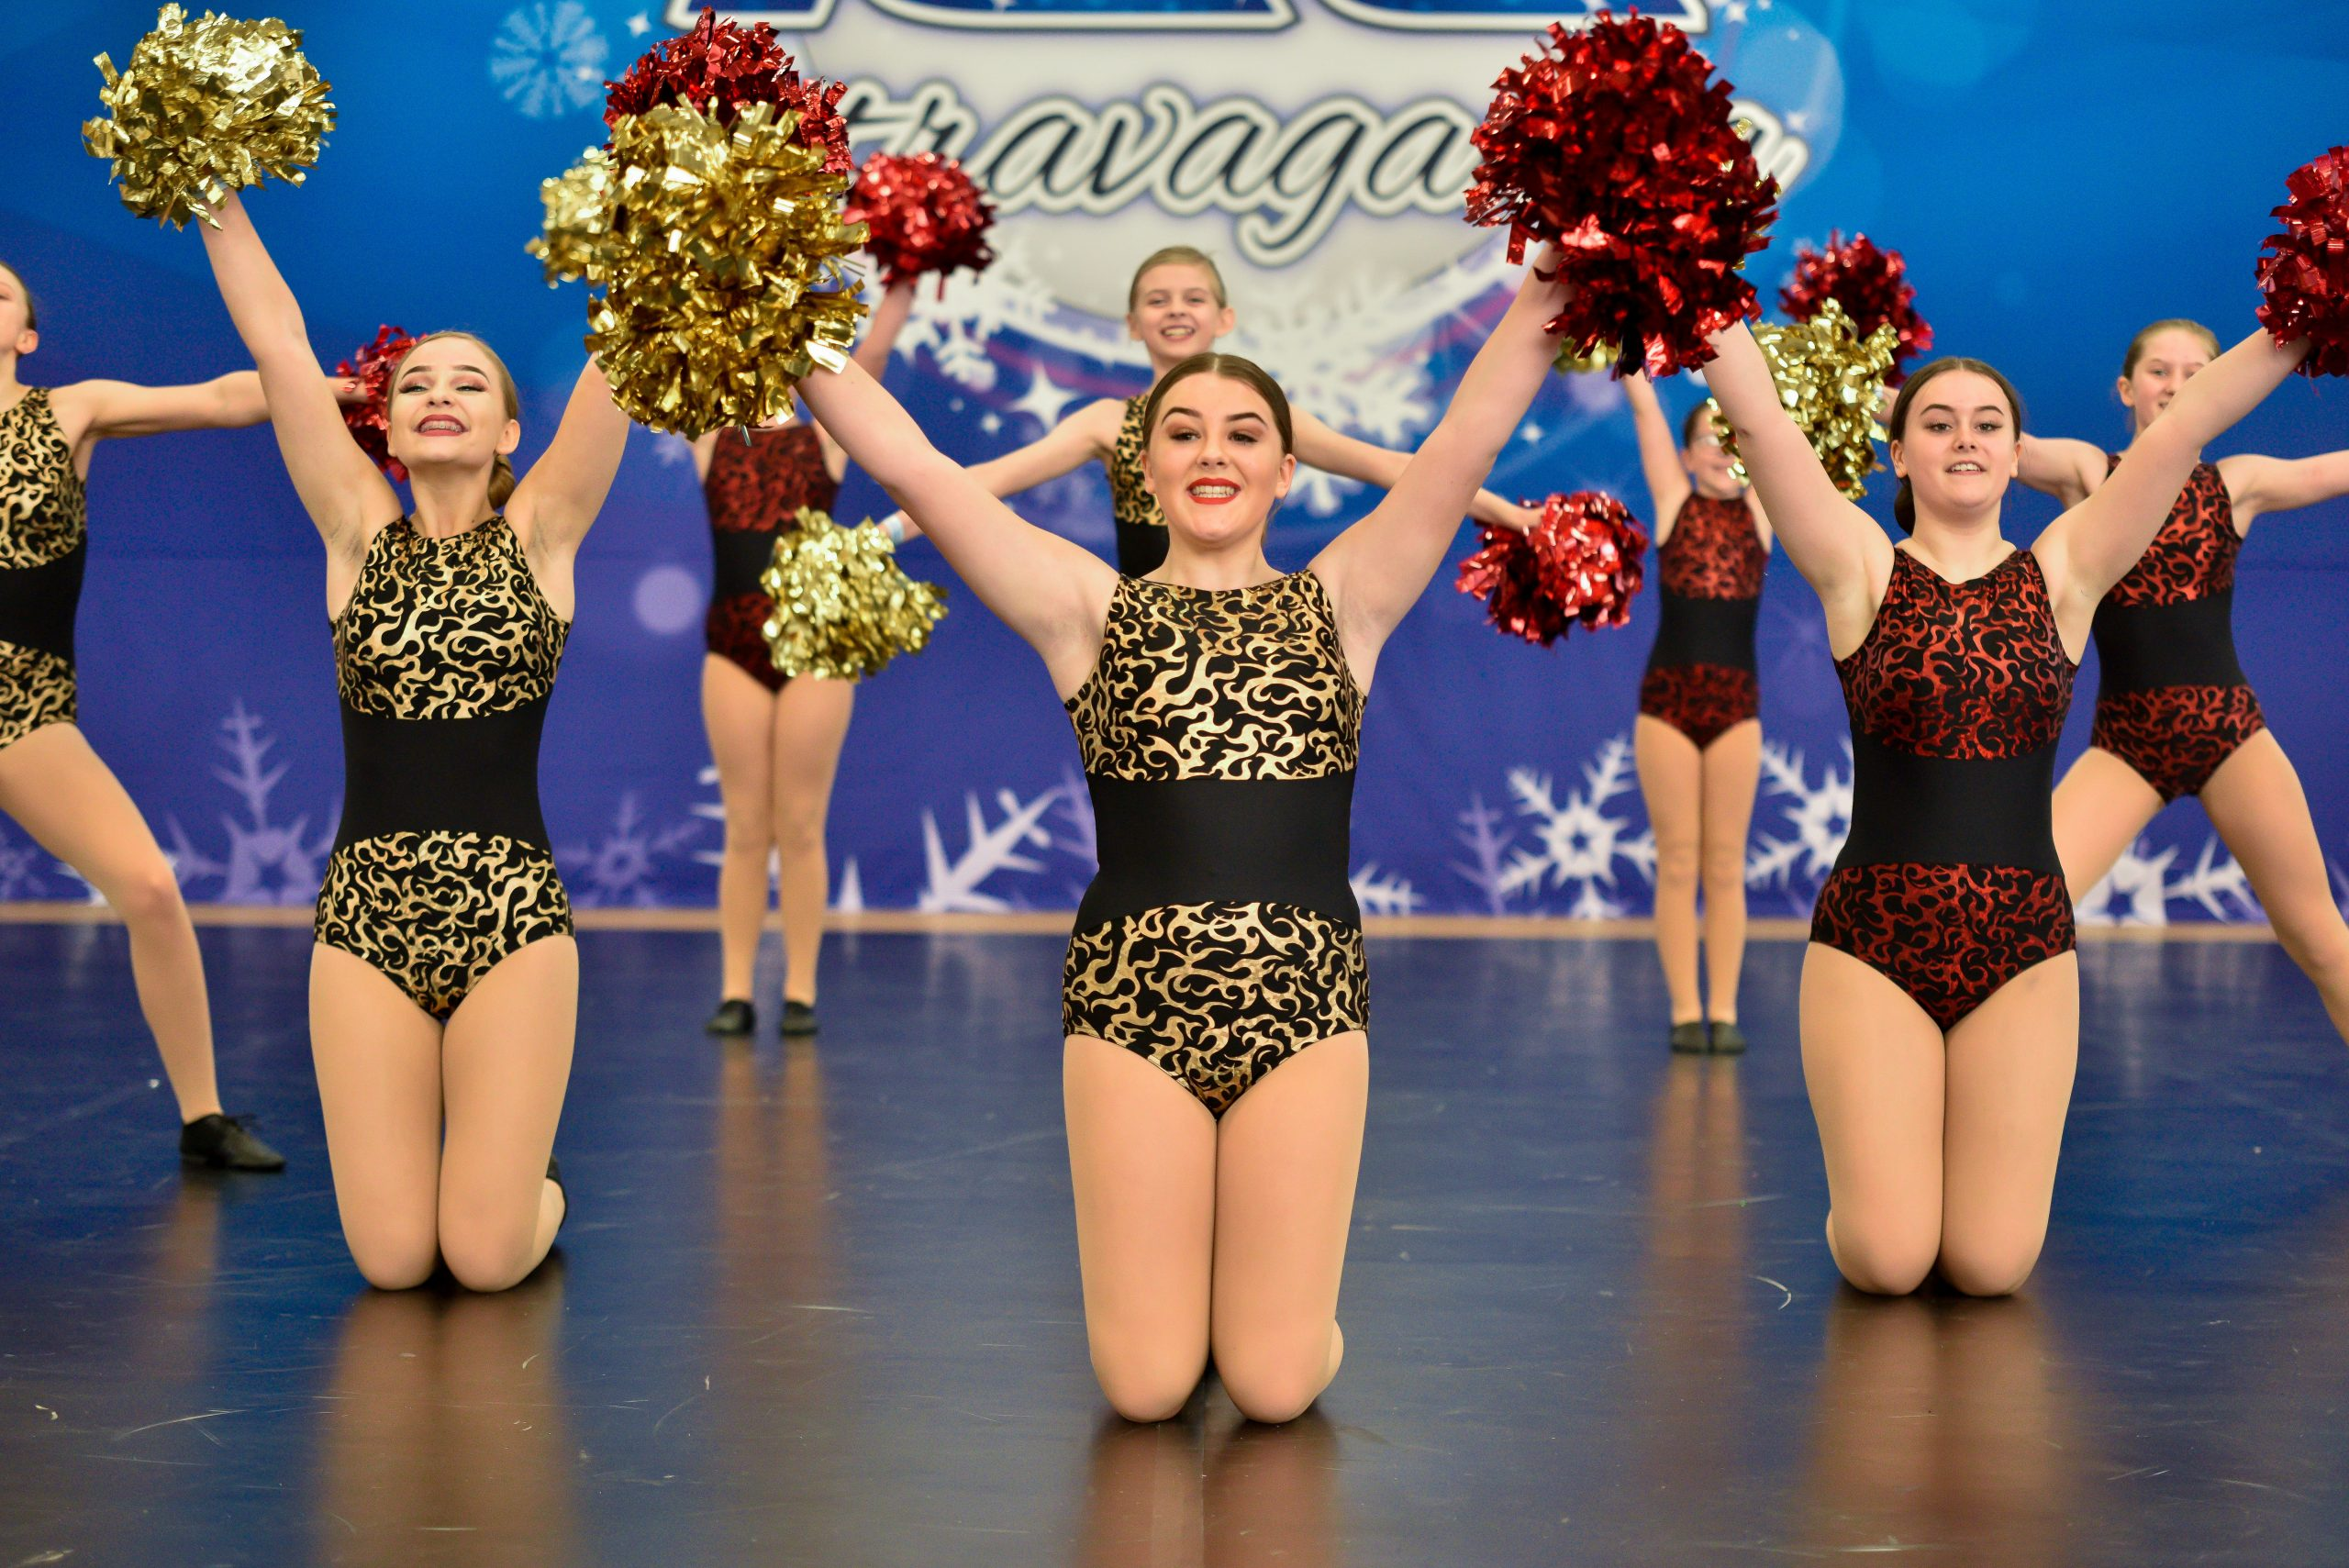 A pom team compete with red and gold poms on a dance floor at an ICE event